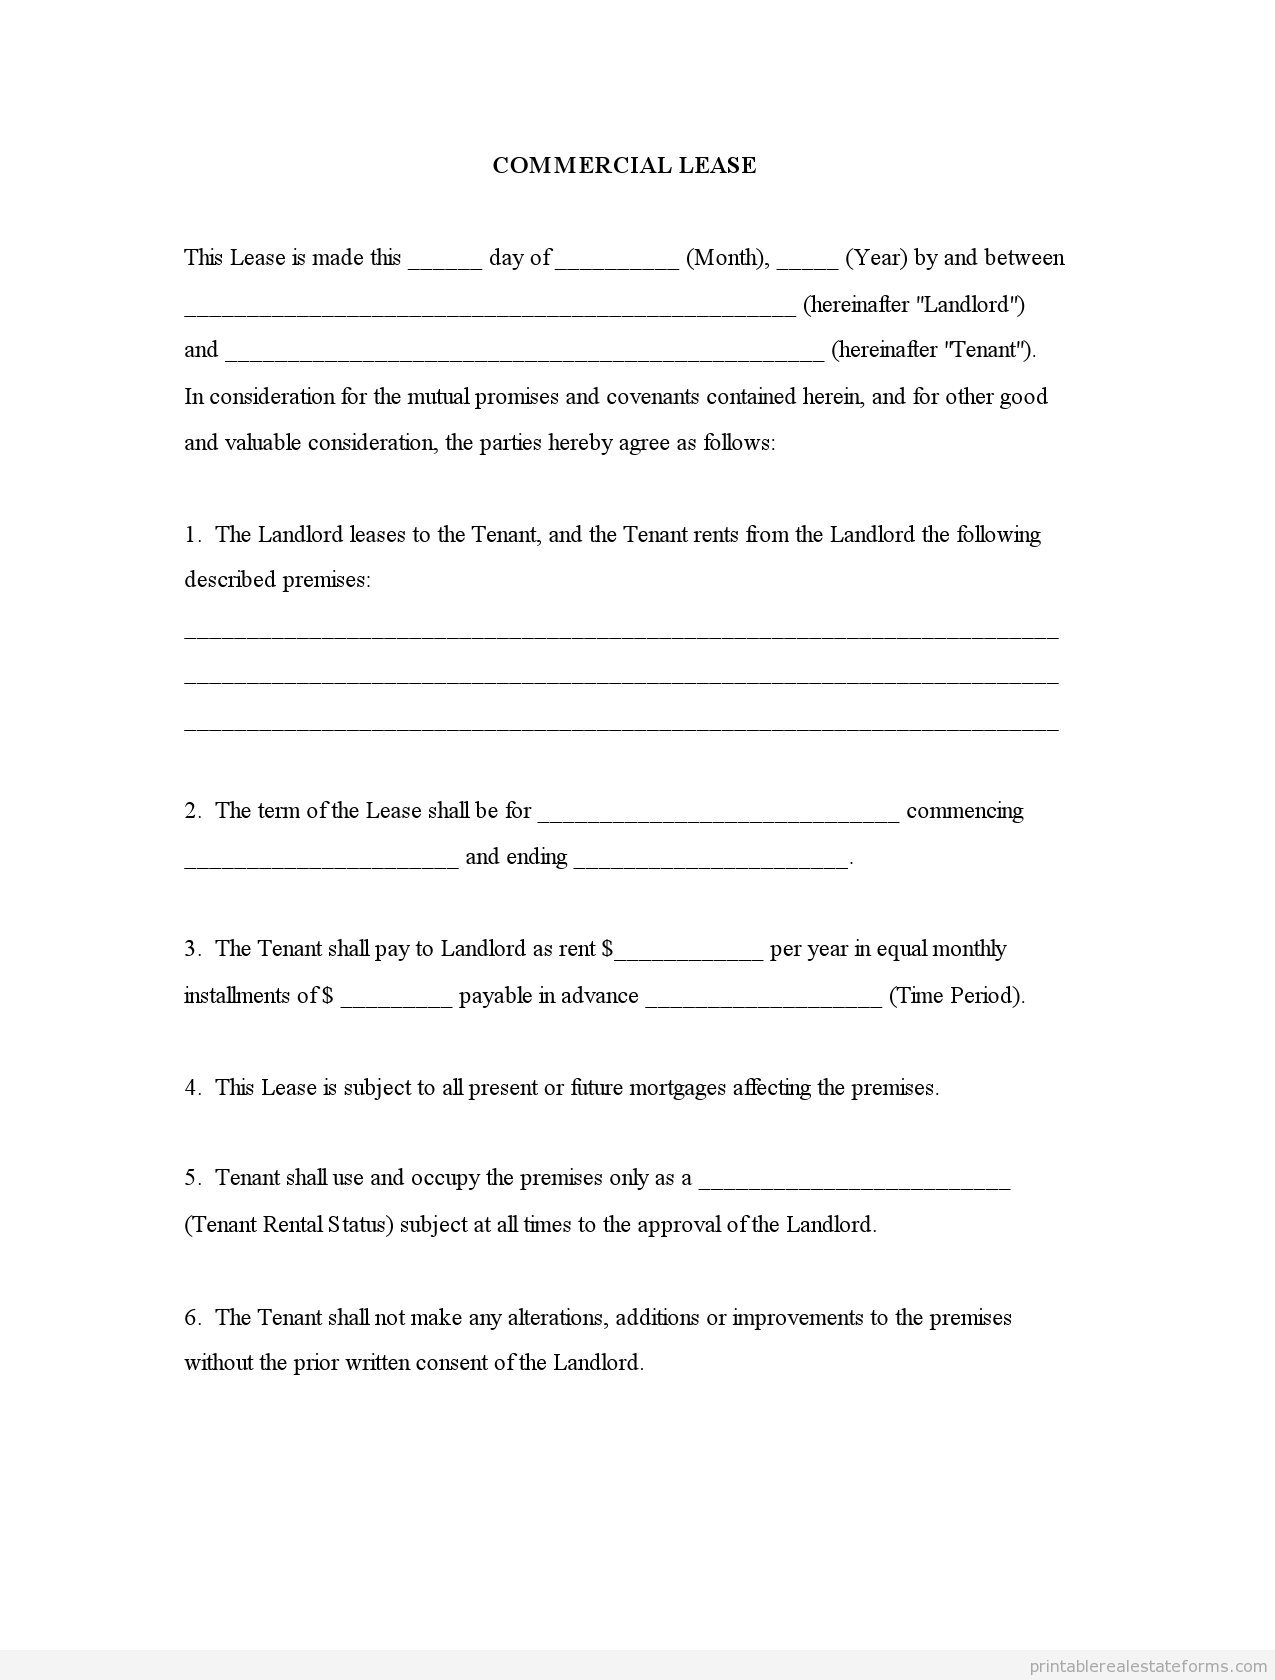 Printable Sample Commercial Lease Form  Template For Free  Docx